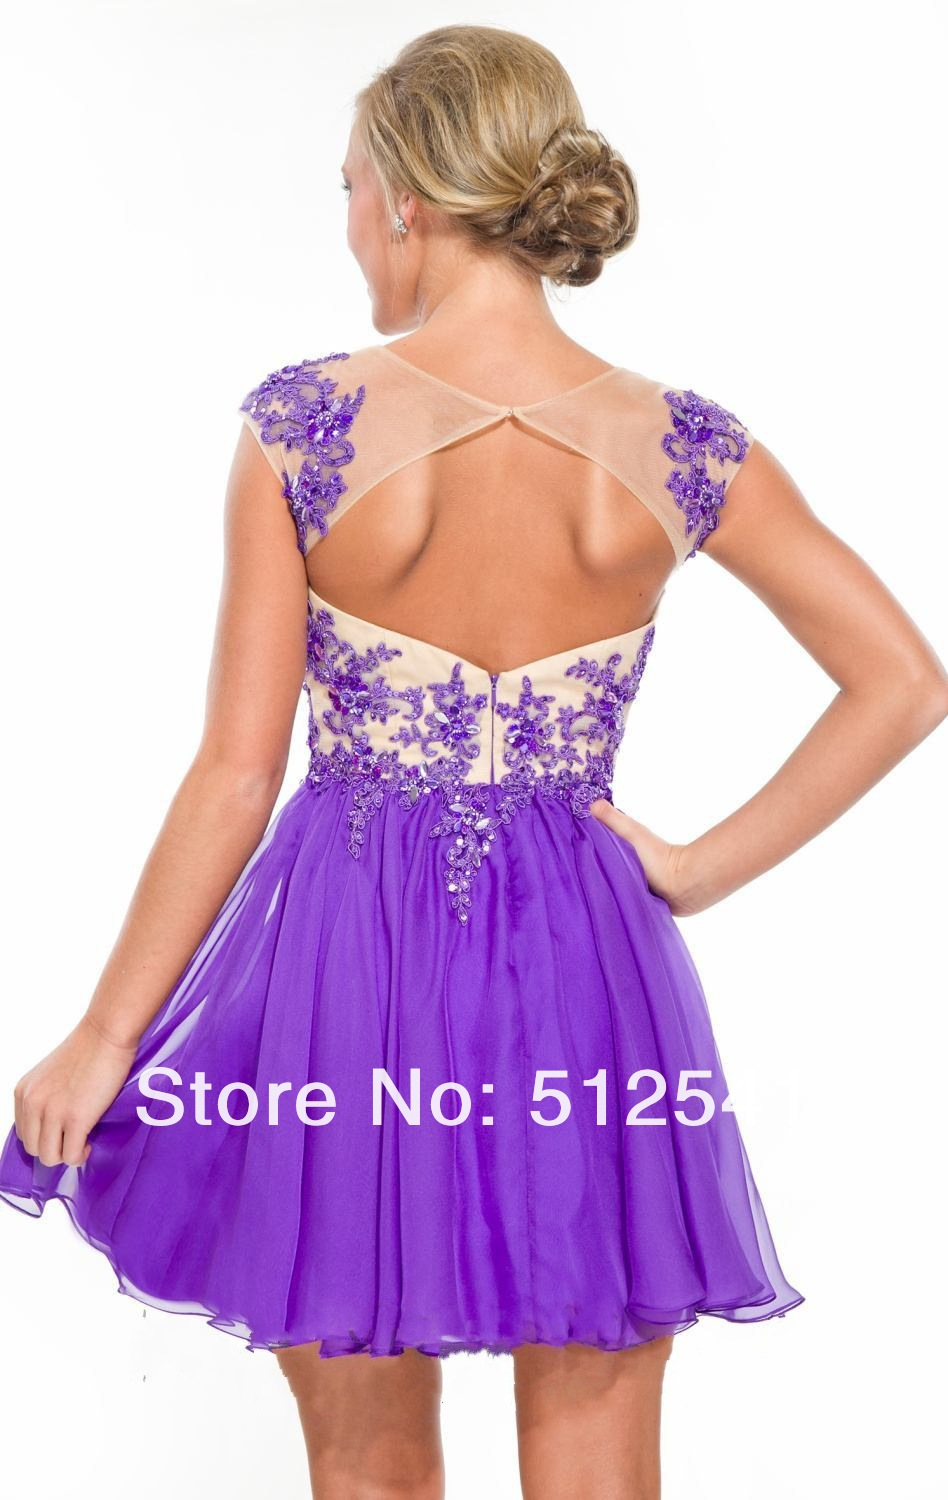 a87eb210b9b Hot Sale Cap Sleeve Purple Beaded Applique Short Homecoming Dresses 2015 8  Grade Graduation Dresses For Girls Party Gown on Aliexpress.com